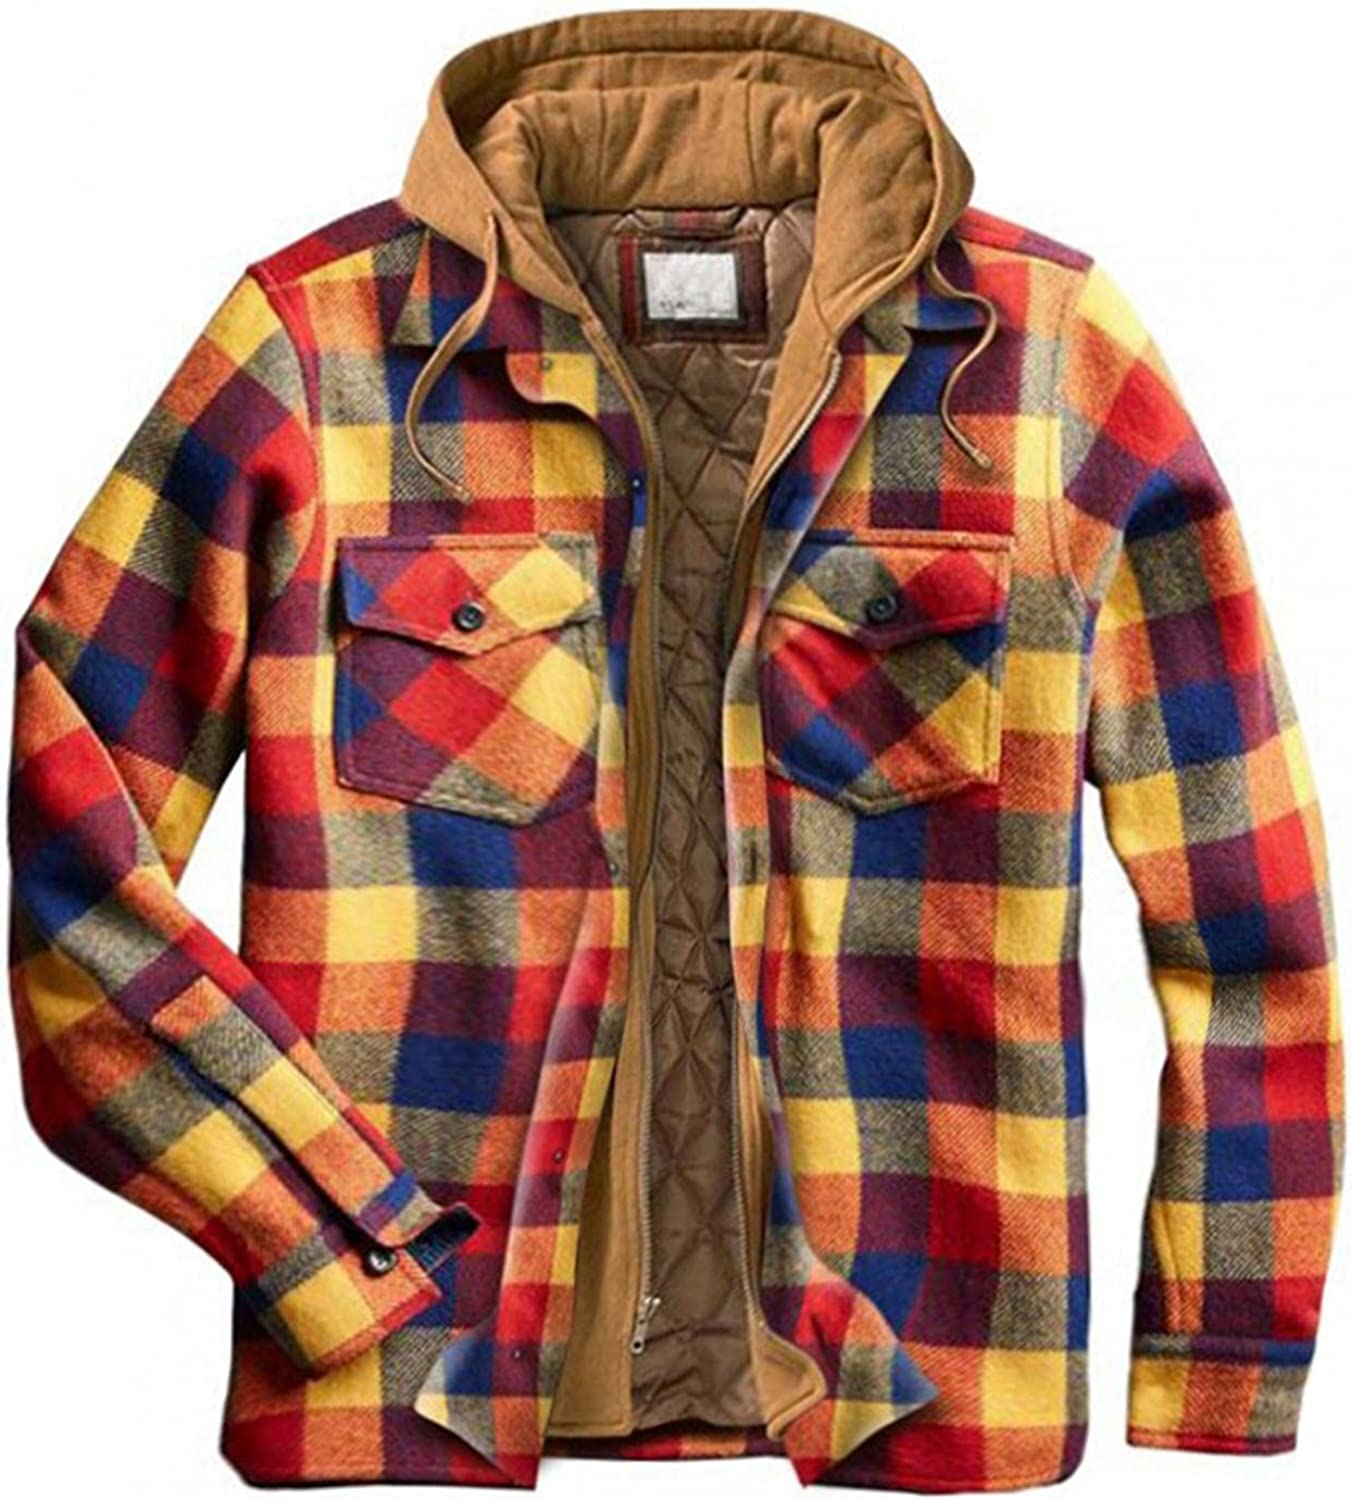 VEKDONE Men's Flannel Plaid Shirt Jacket with Hood Fashion Casual Lightweight Long Sleeve Quilted Lined Hoodie Jackets